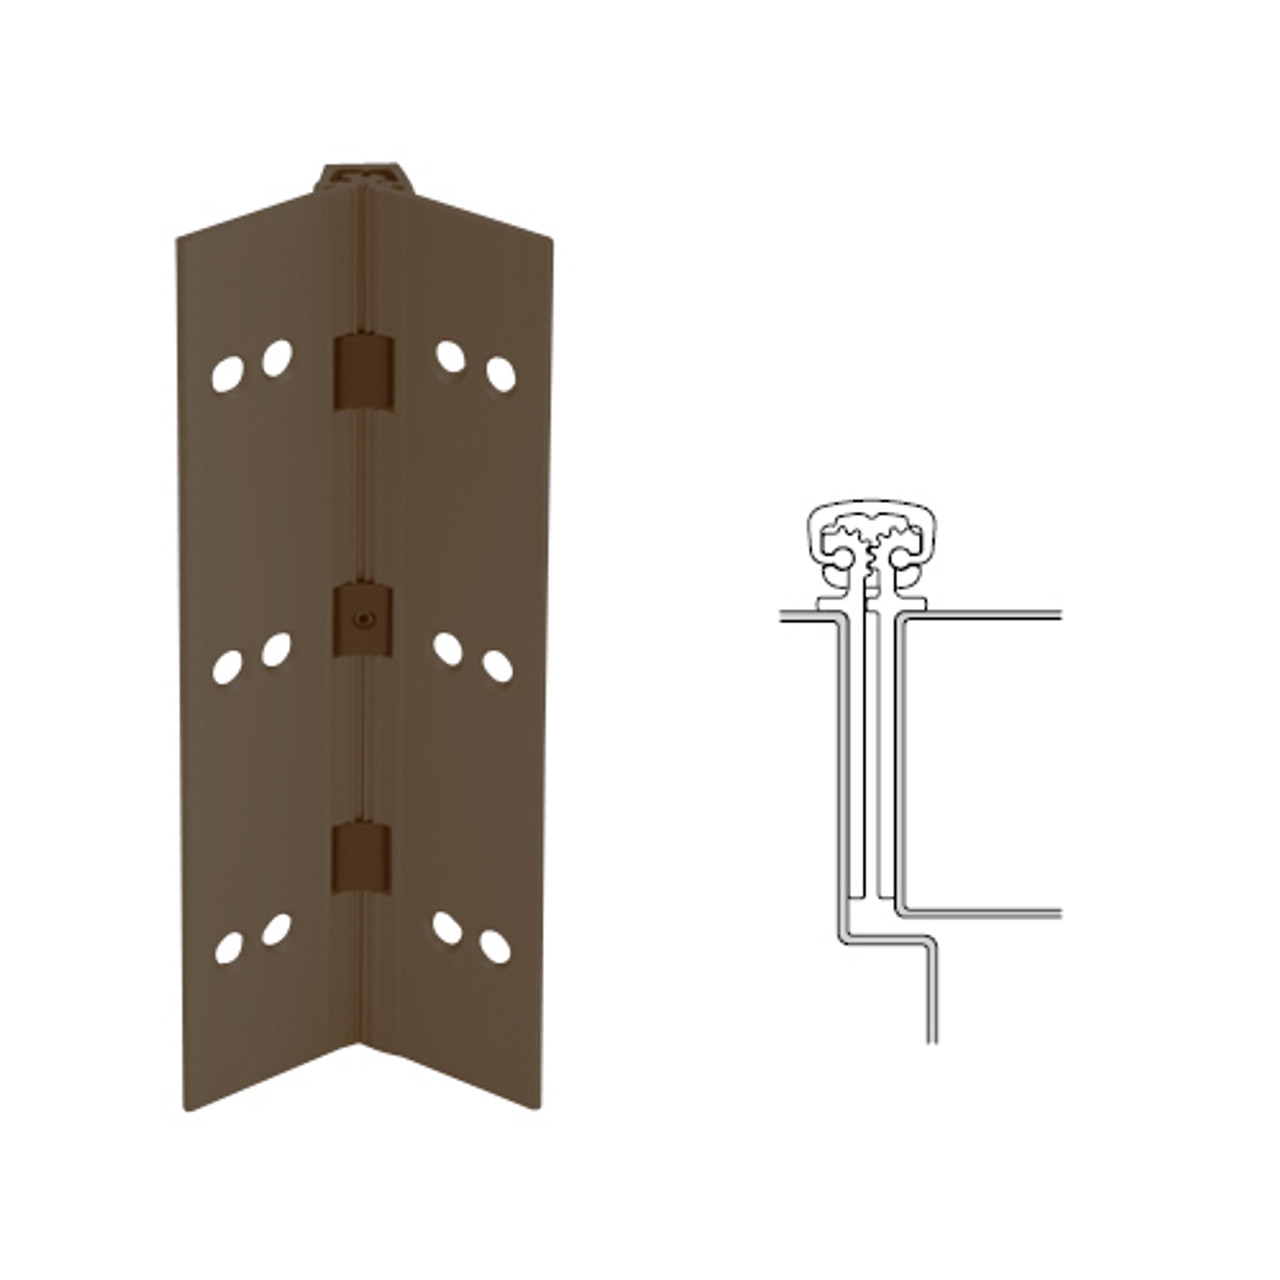 027XY-313AN-120-SECWDWD IVES Full Mortise Continuous Geared Hinges with Security Screws - Hex Pin Drive in Dark Bronze Anodized